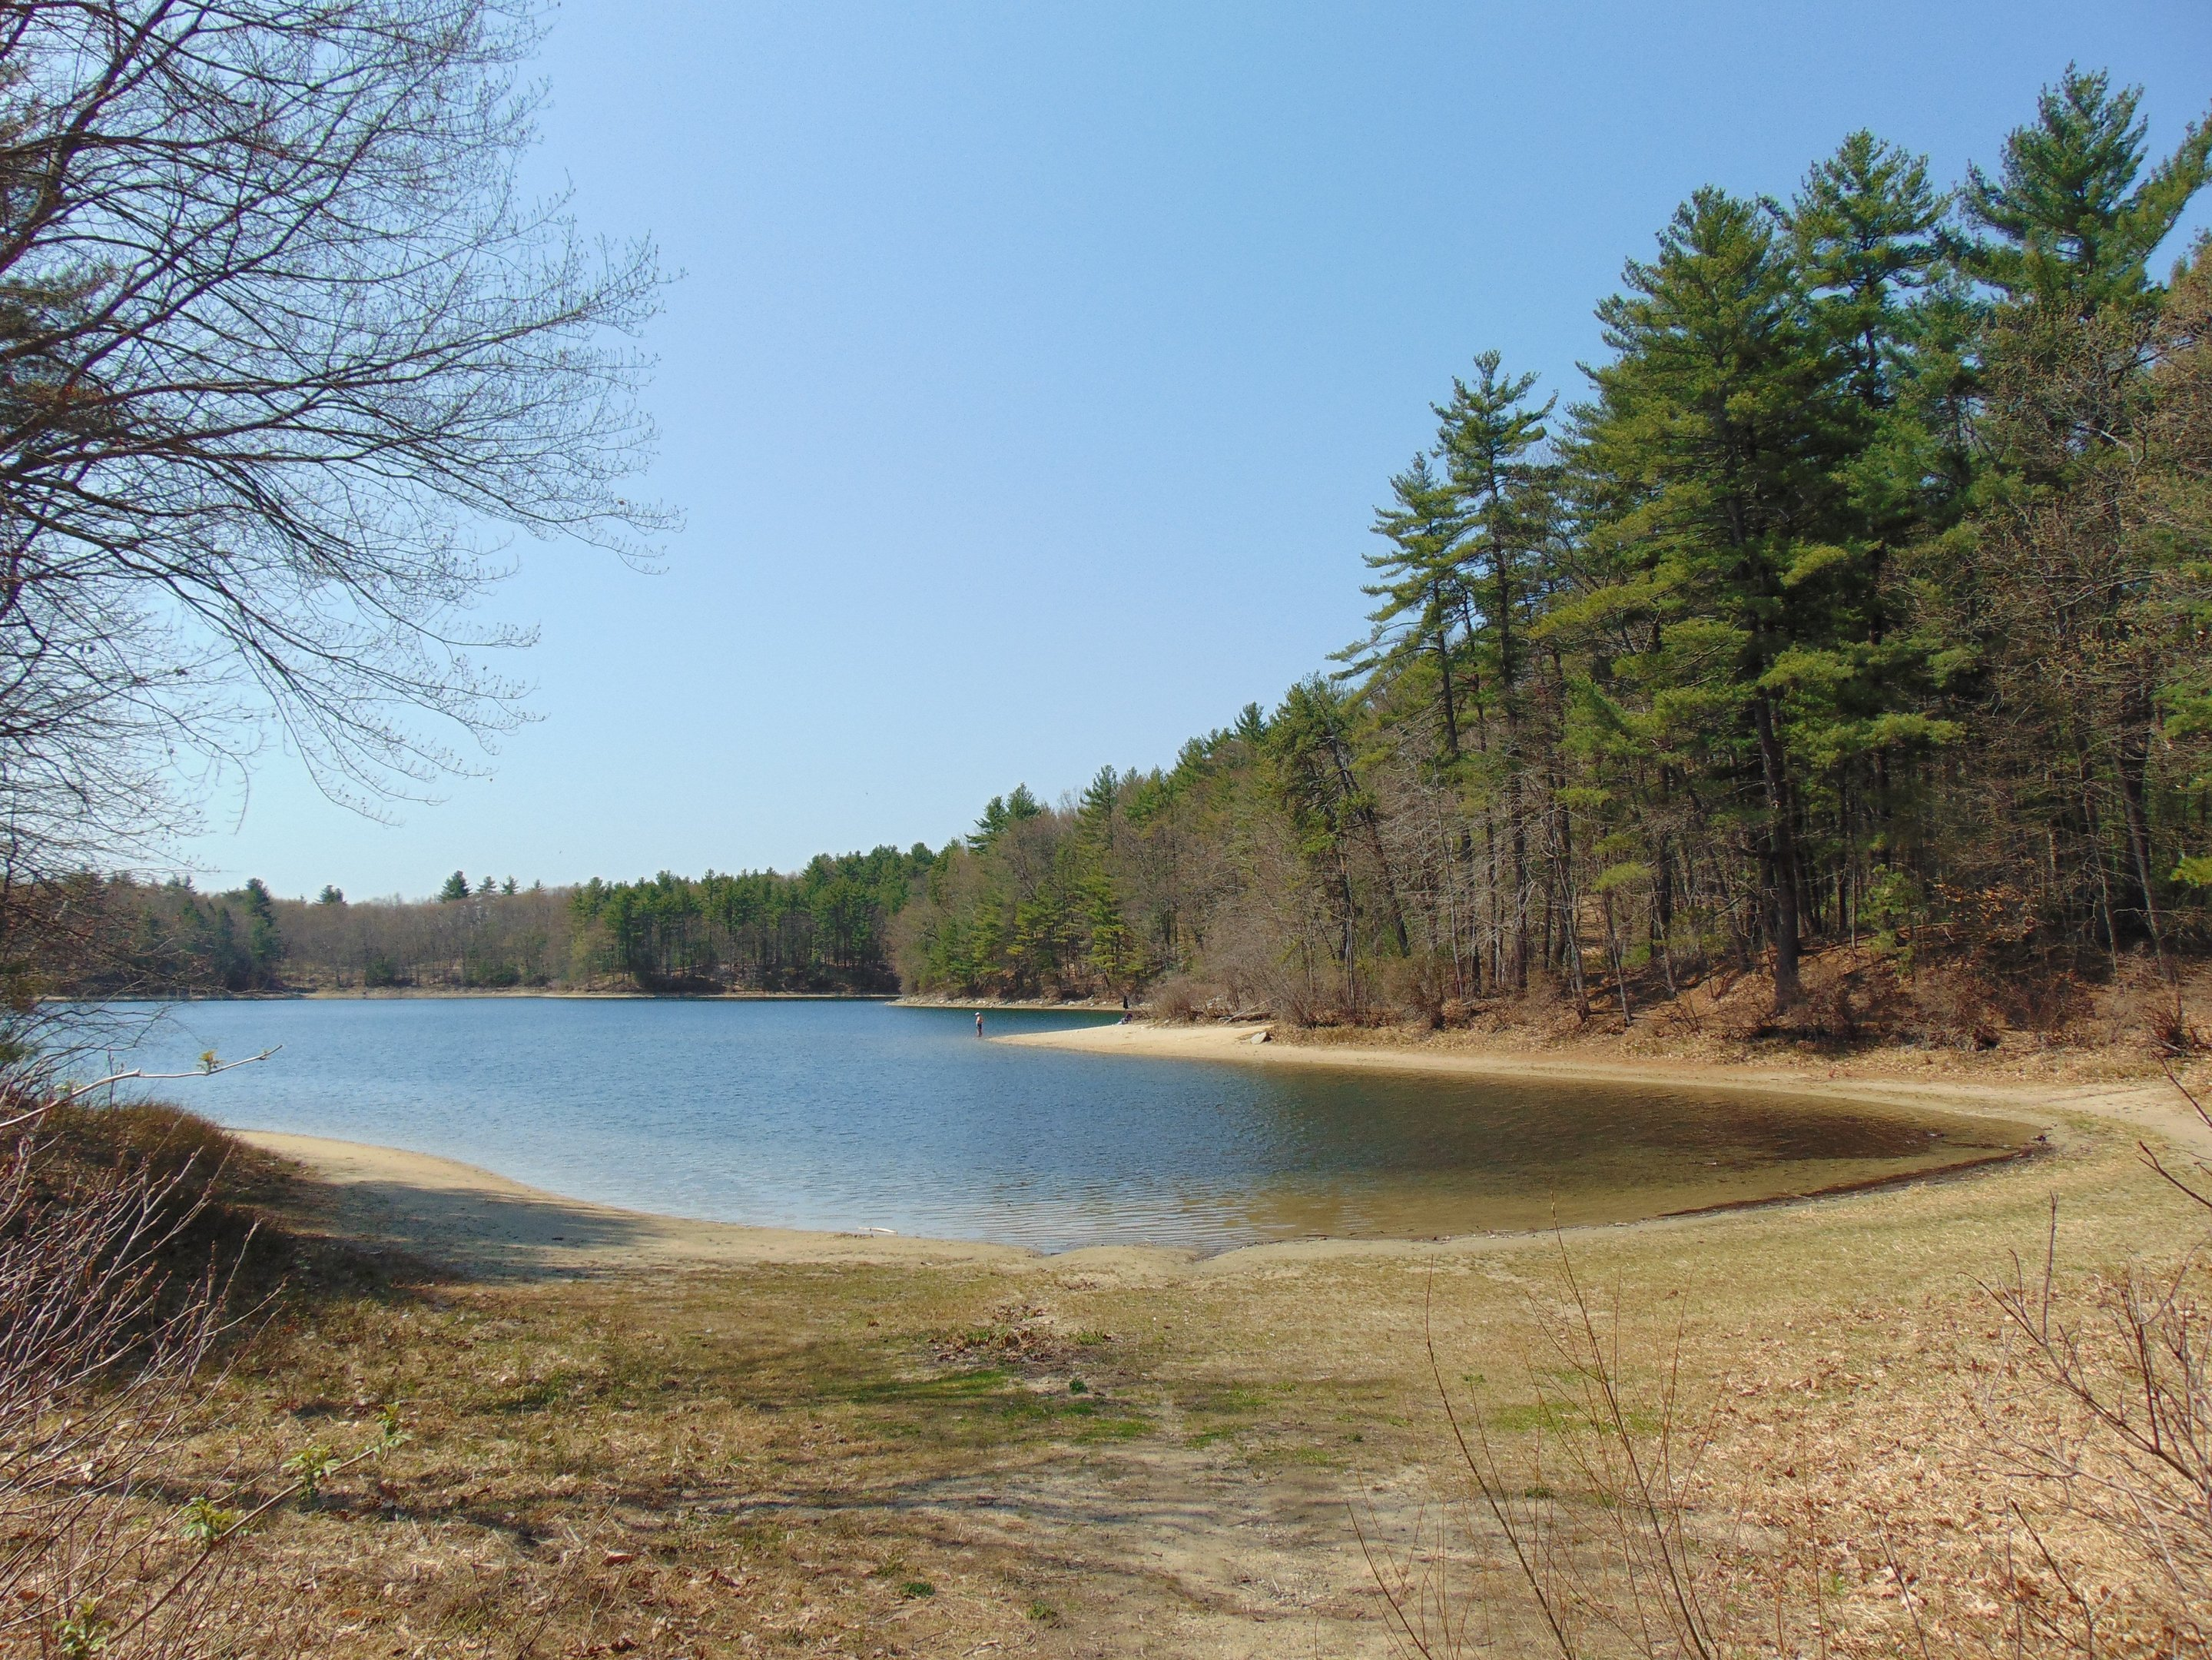 Climate change and recreational activities at Walden Pond ...